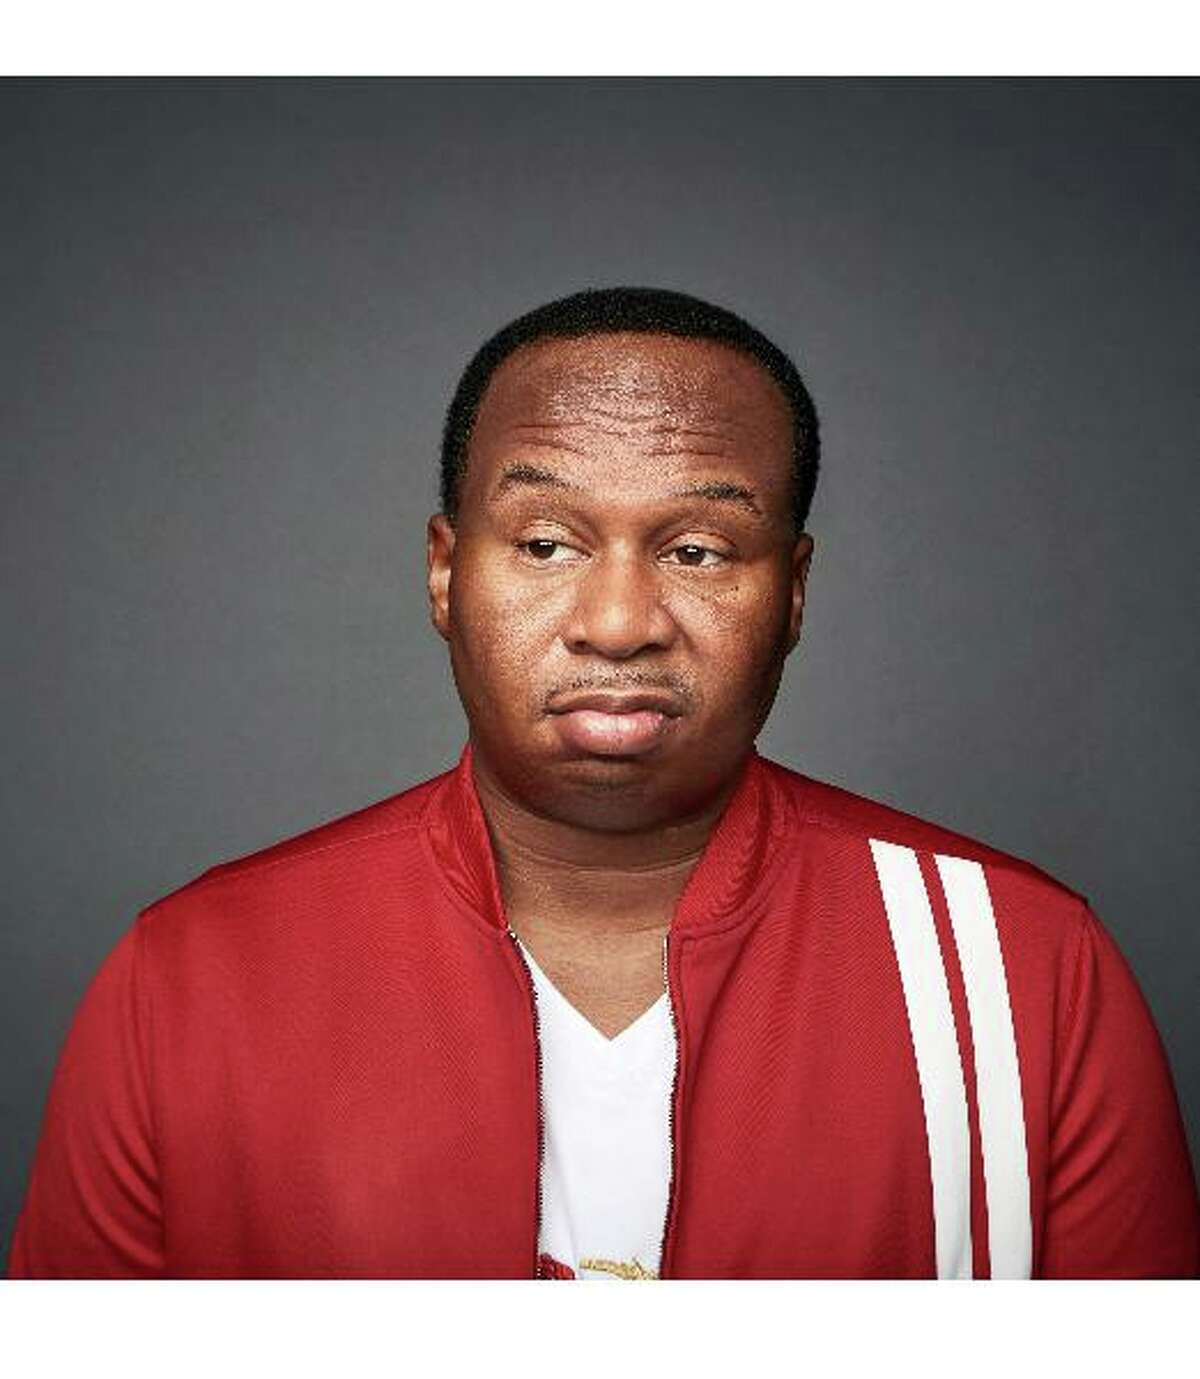 """Comedian Roy Wood Jr., a correspondent on """"The Daily Show with Trevor Noah,"""" will be performing stand-up at Bridgeport's Stress Factory Comedy Club Jan. 17-18."""